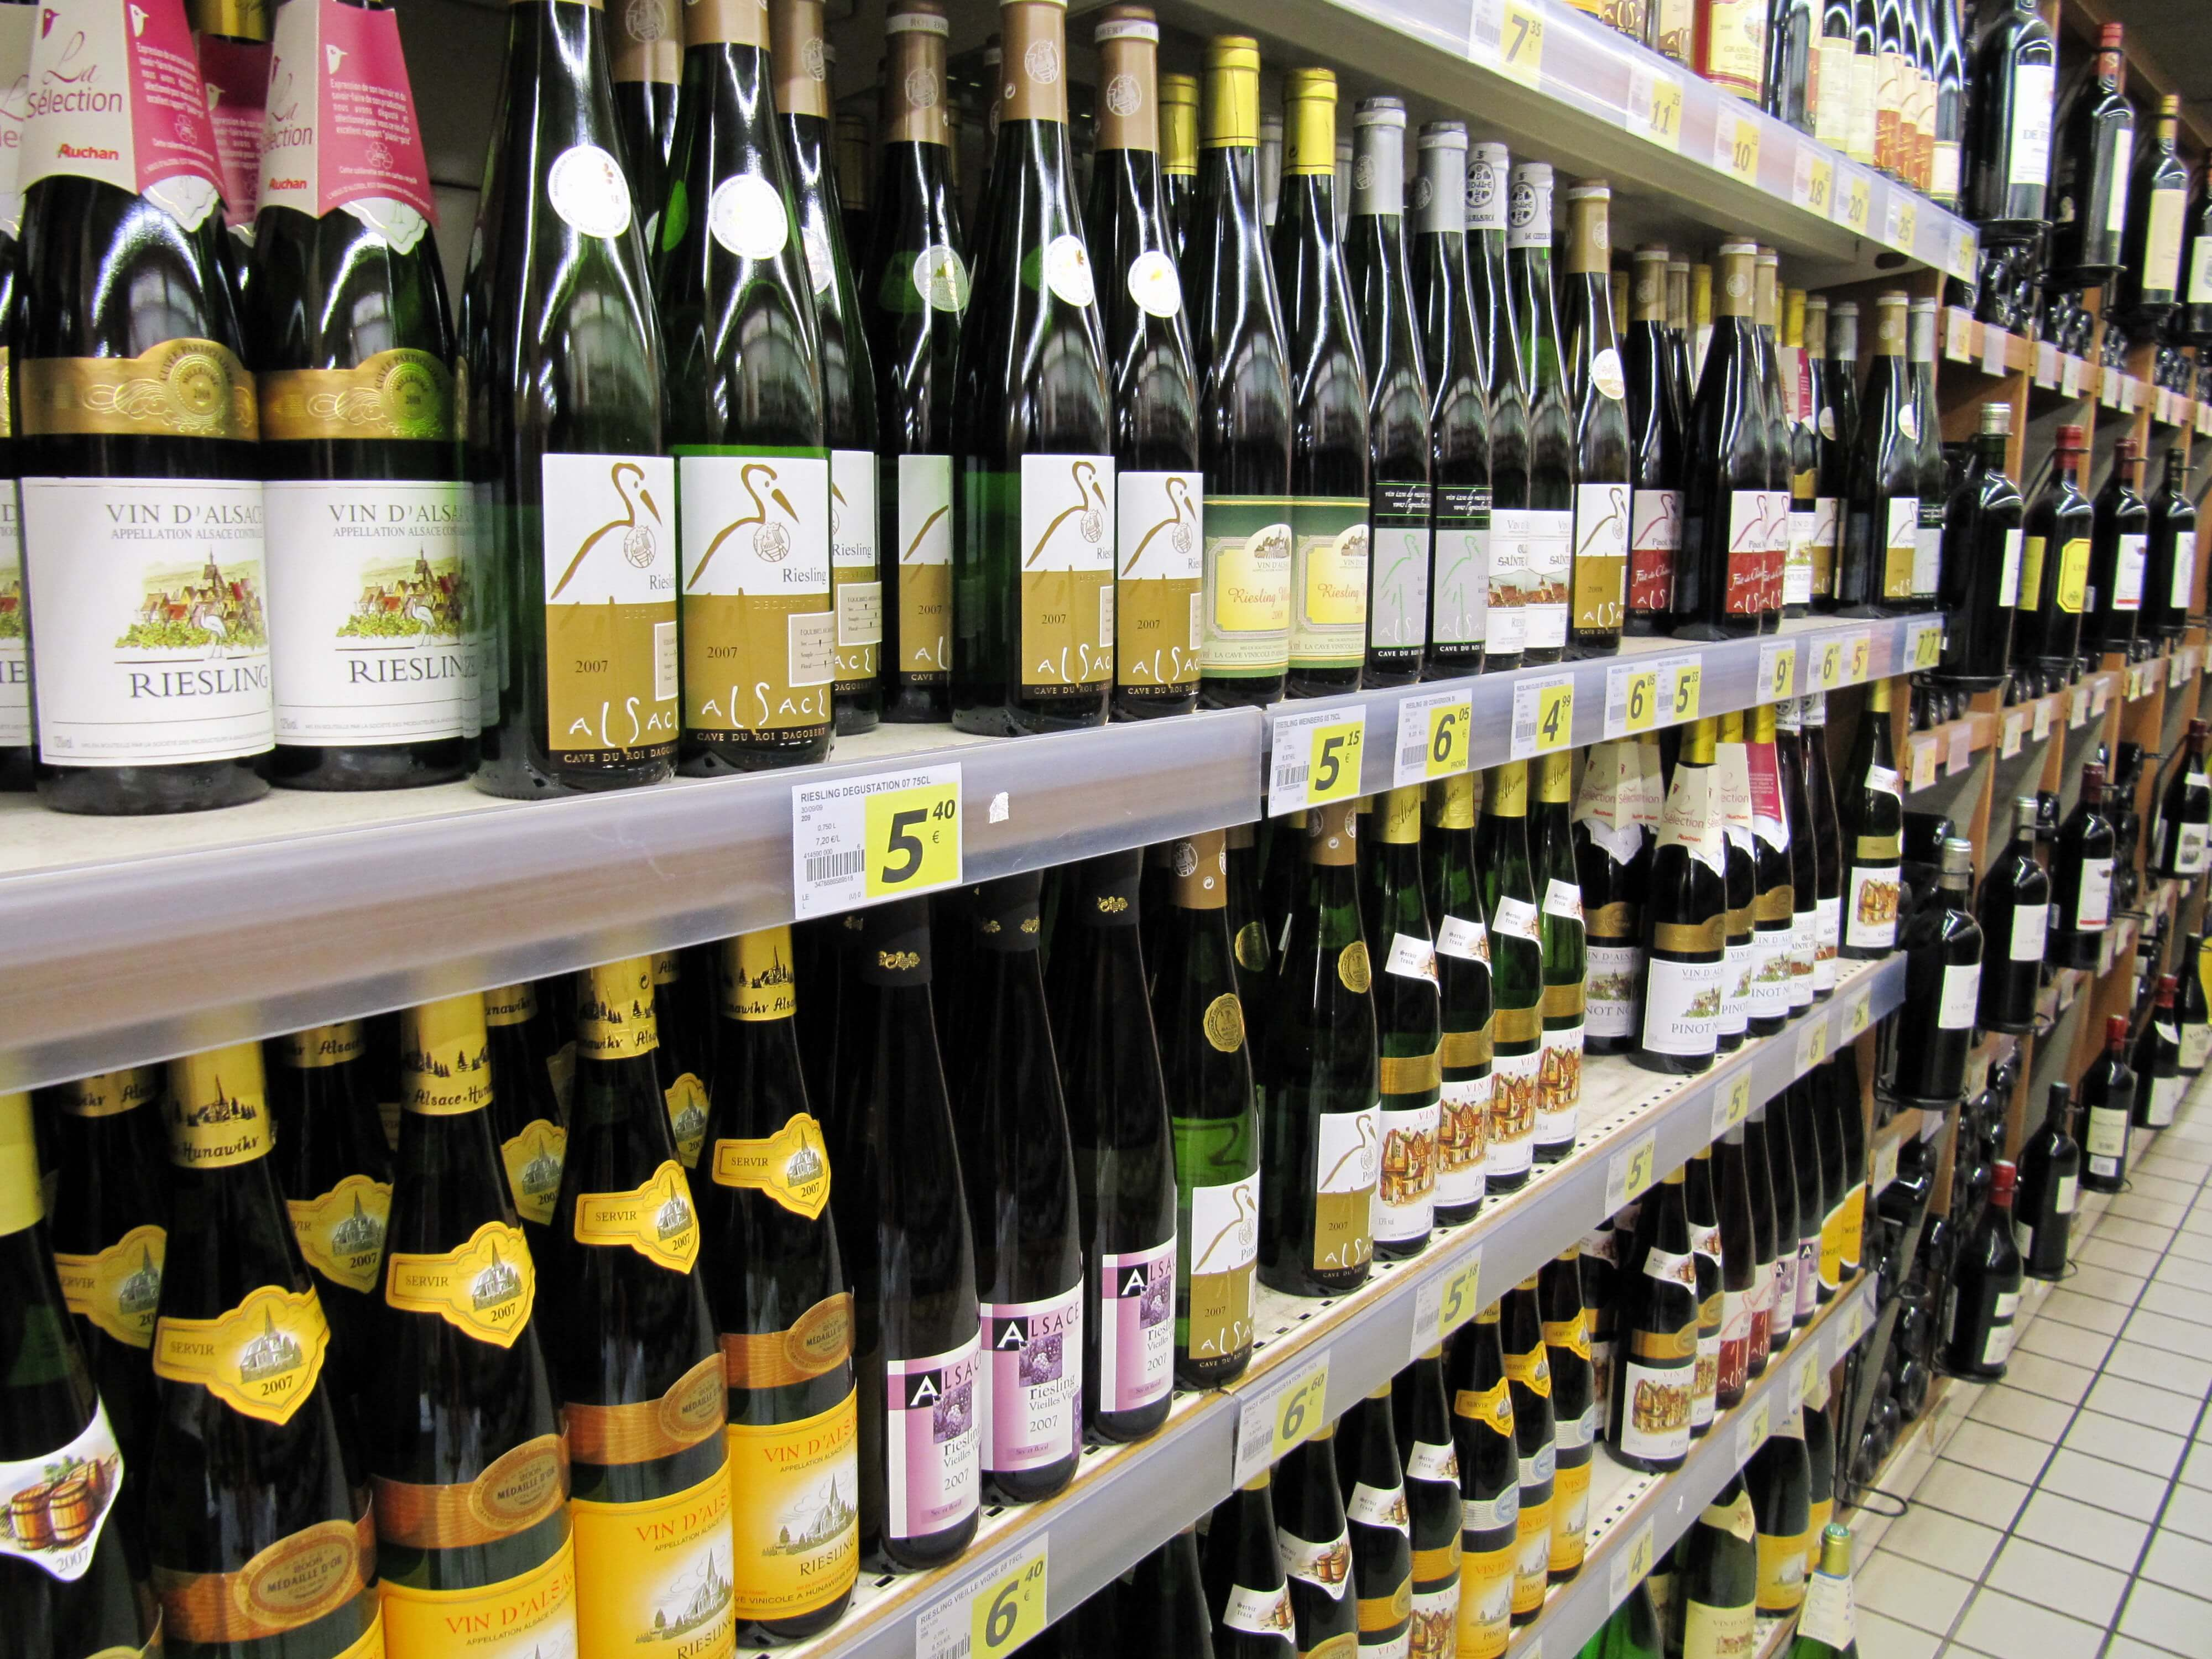 Supermarket additionally Be Aware Of Wine Prices In Dublins additionally Best Liquor Stores Manhattan New York Nyc Where To Buy Spirits Gin Bourbon Vermouth together with 690003 Howard Miller Black Corner Wine Bar Cabi  Piedmont Ii furthermore Custom Gondola Shelving Aisle Signs. on liquor shelf display